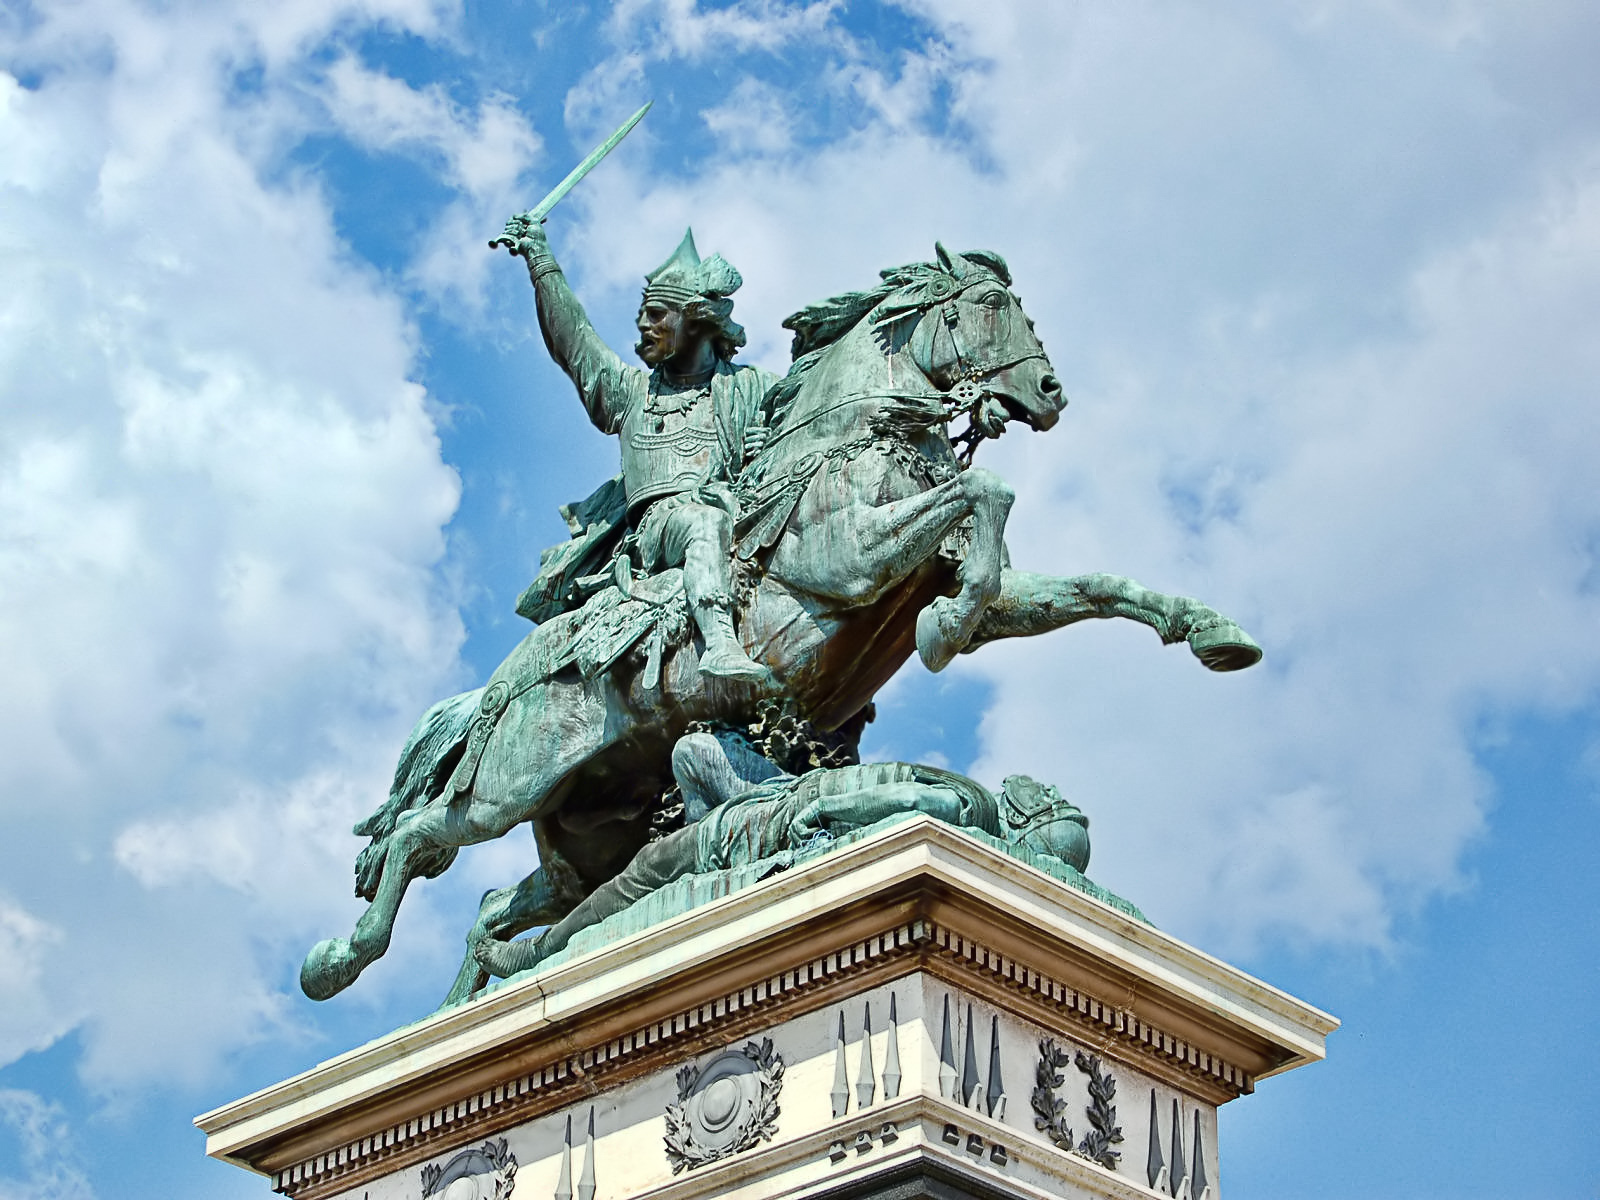 Statue of Vercingetorix in Clermont-Ferrand, France